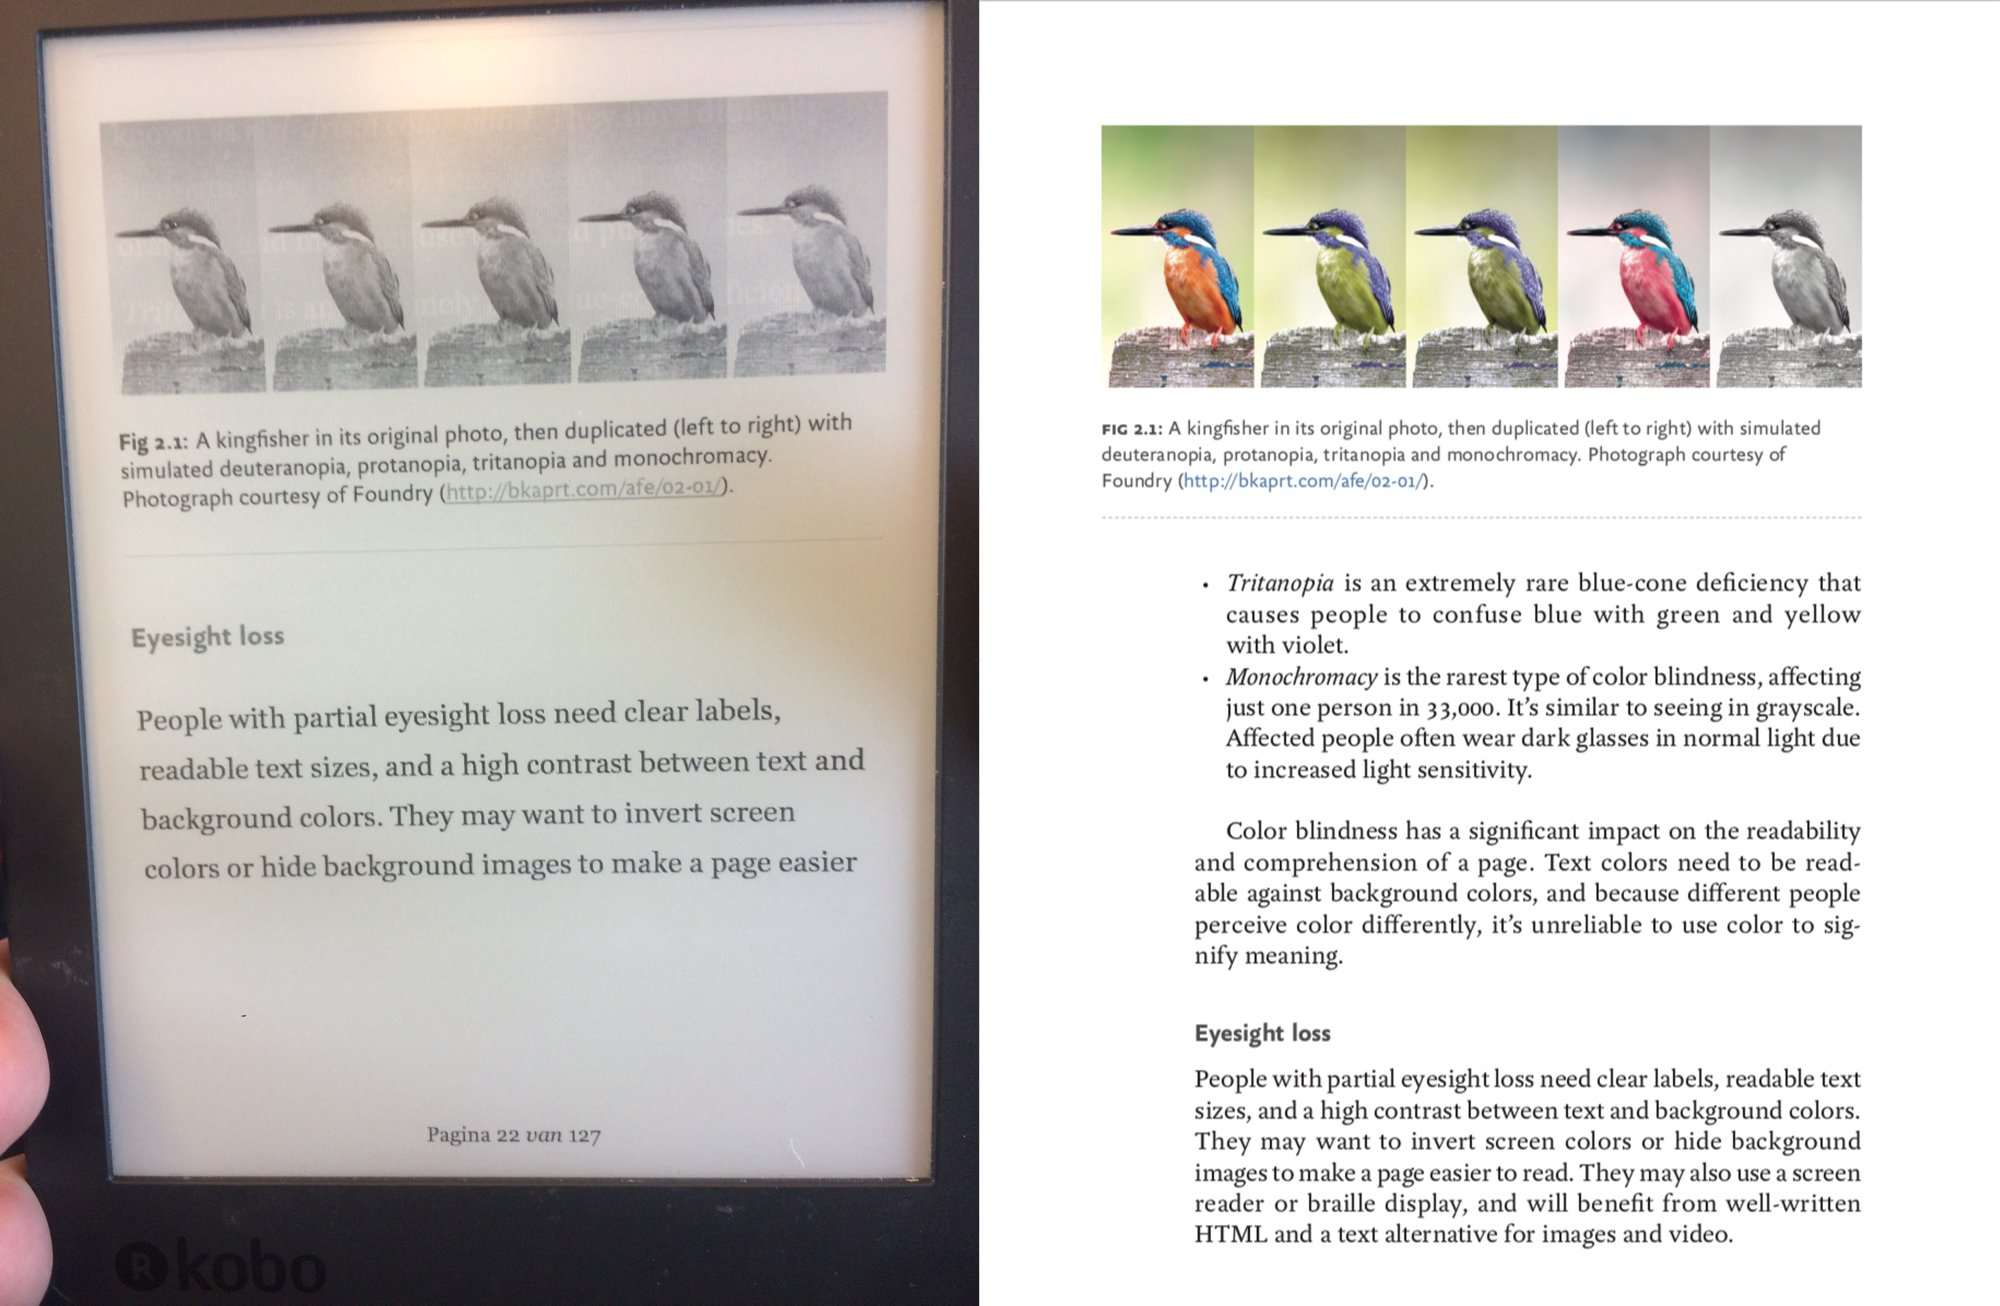 The e-reader shows the comparison images all in greyscale, so they are indistinguishable from one another